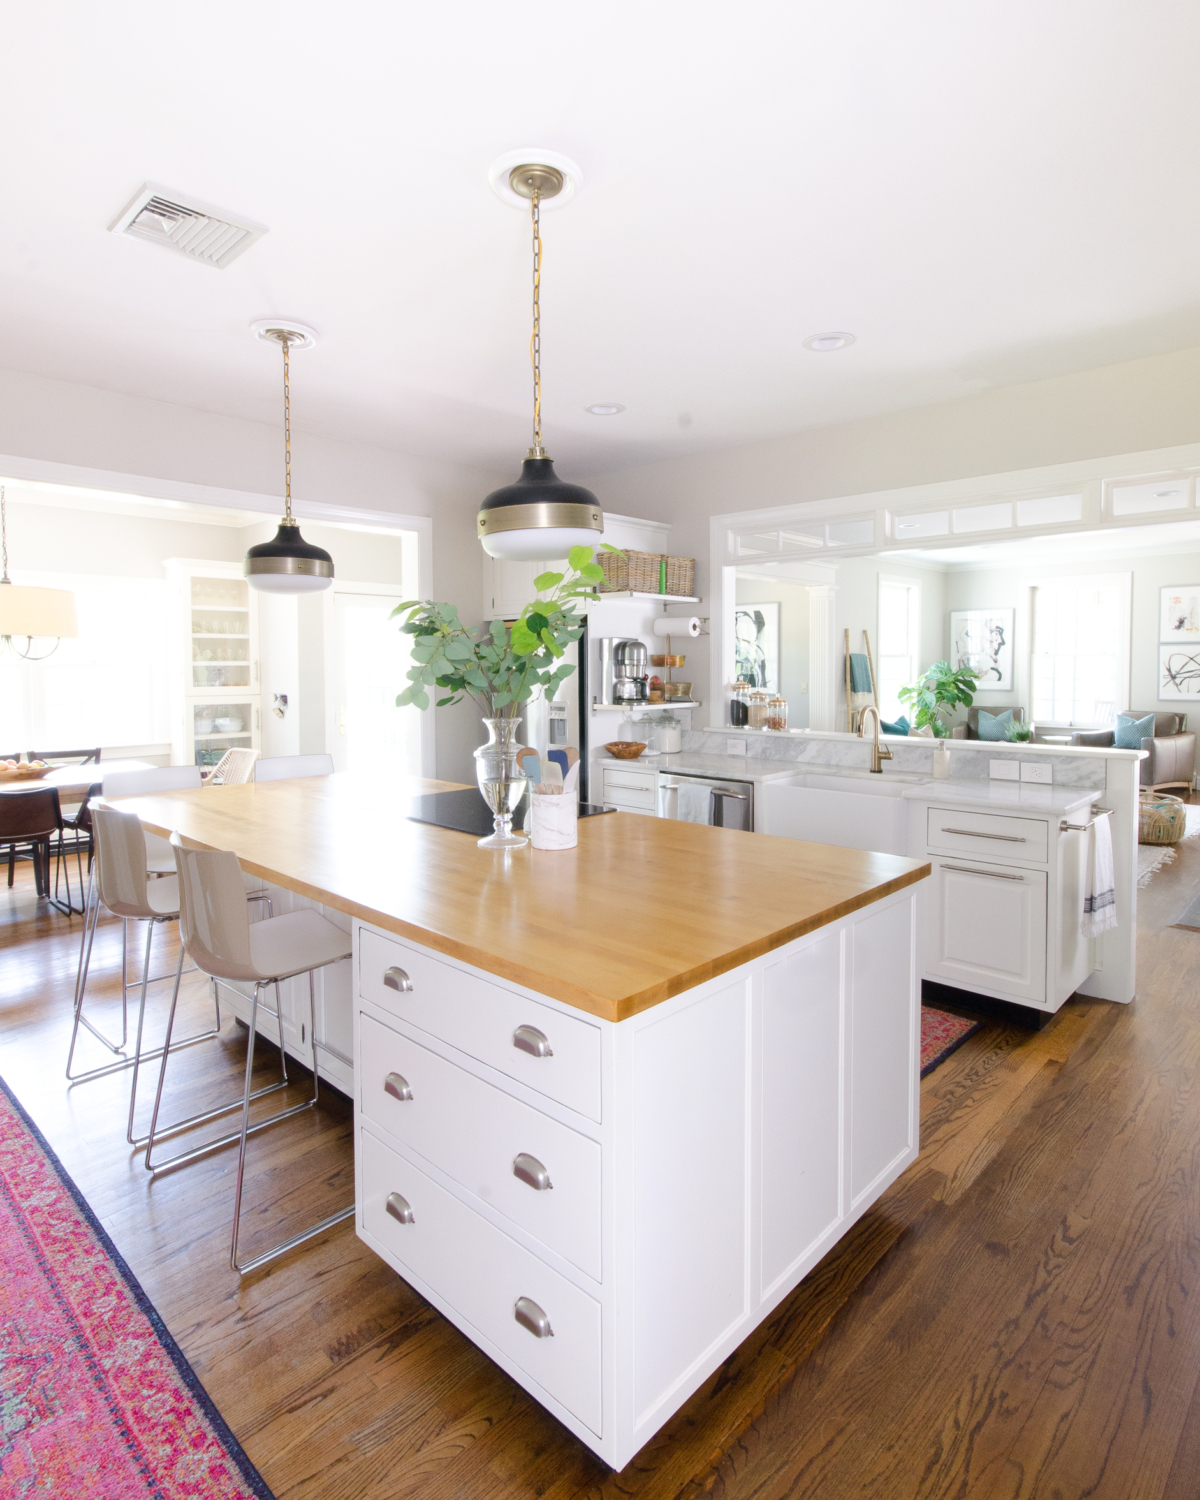 How to Seal Butcher Block Counters - The Chronicles of Home